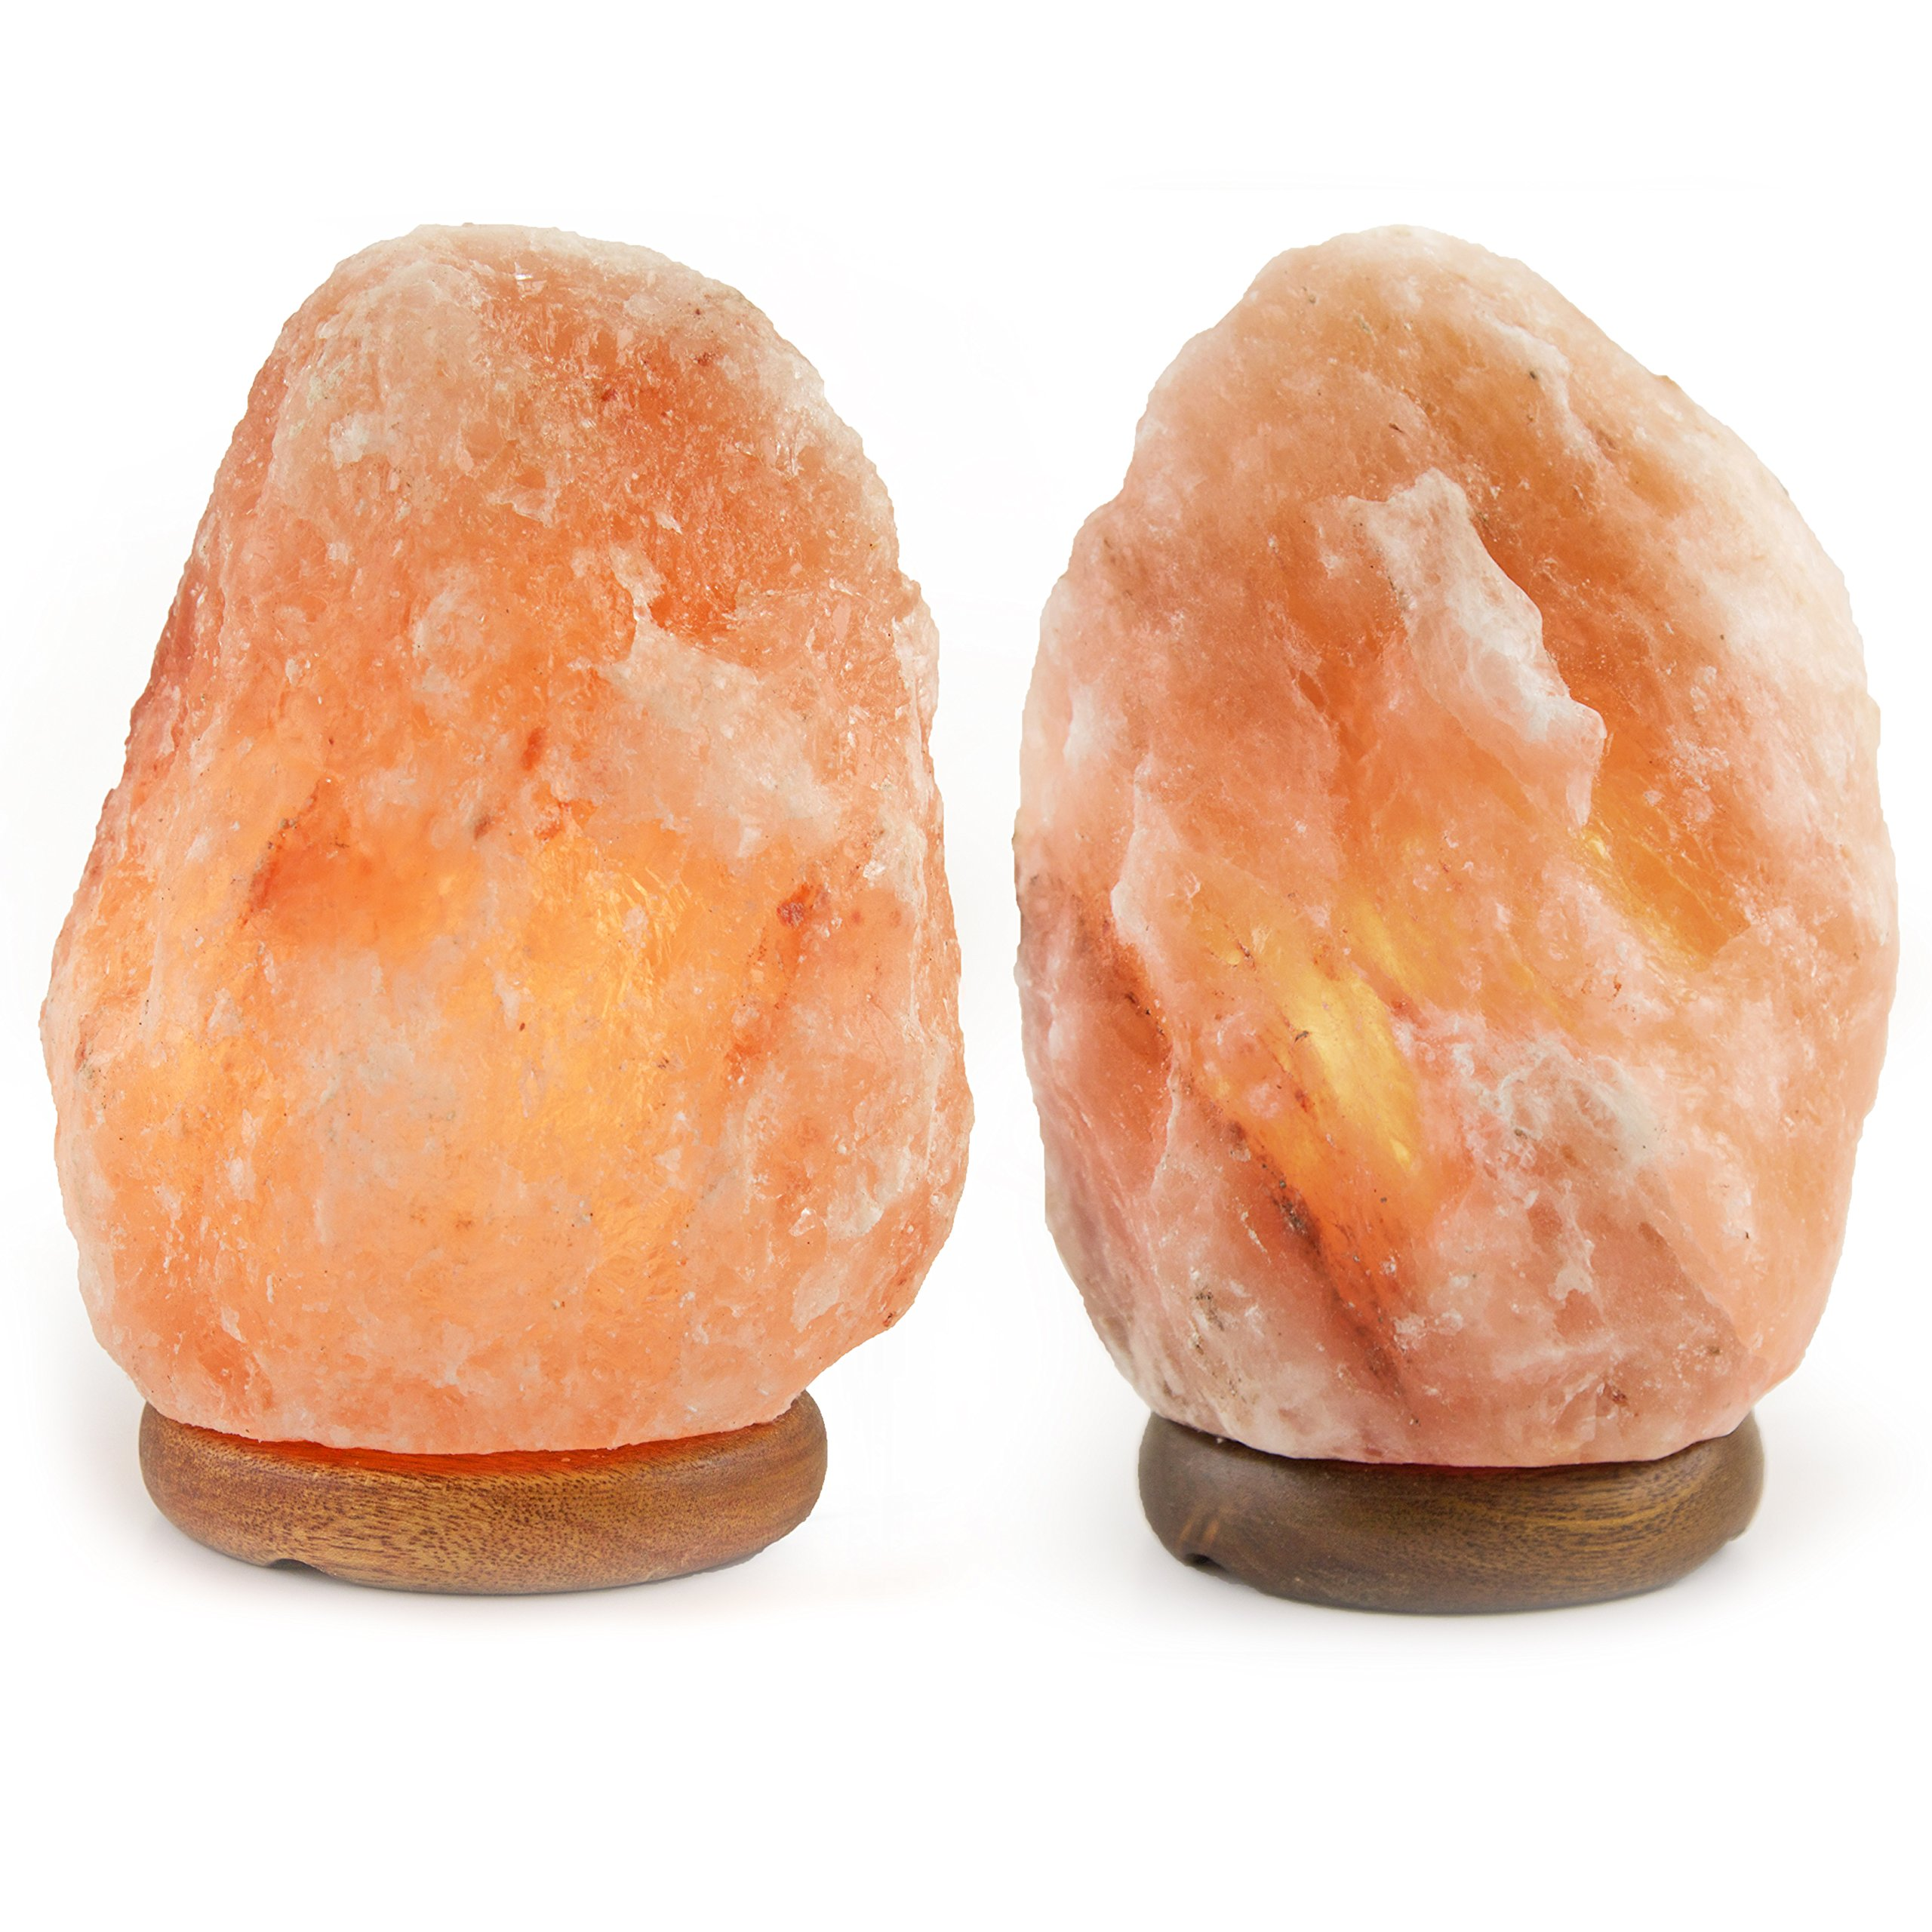 Crystal Allies Gallery CA SLS-L-2pc Natural Himalayan Salt Lamp with Dimmable Switch and 6' UL-Listed Cord (2 Pack), 10'' x 8'' x 8'', Orange by Crystal Allies (Image #1)